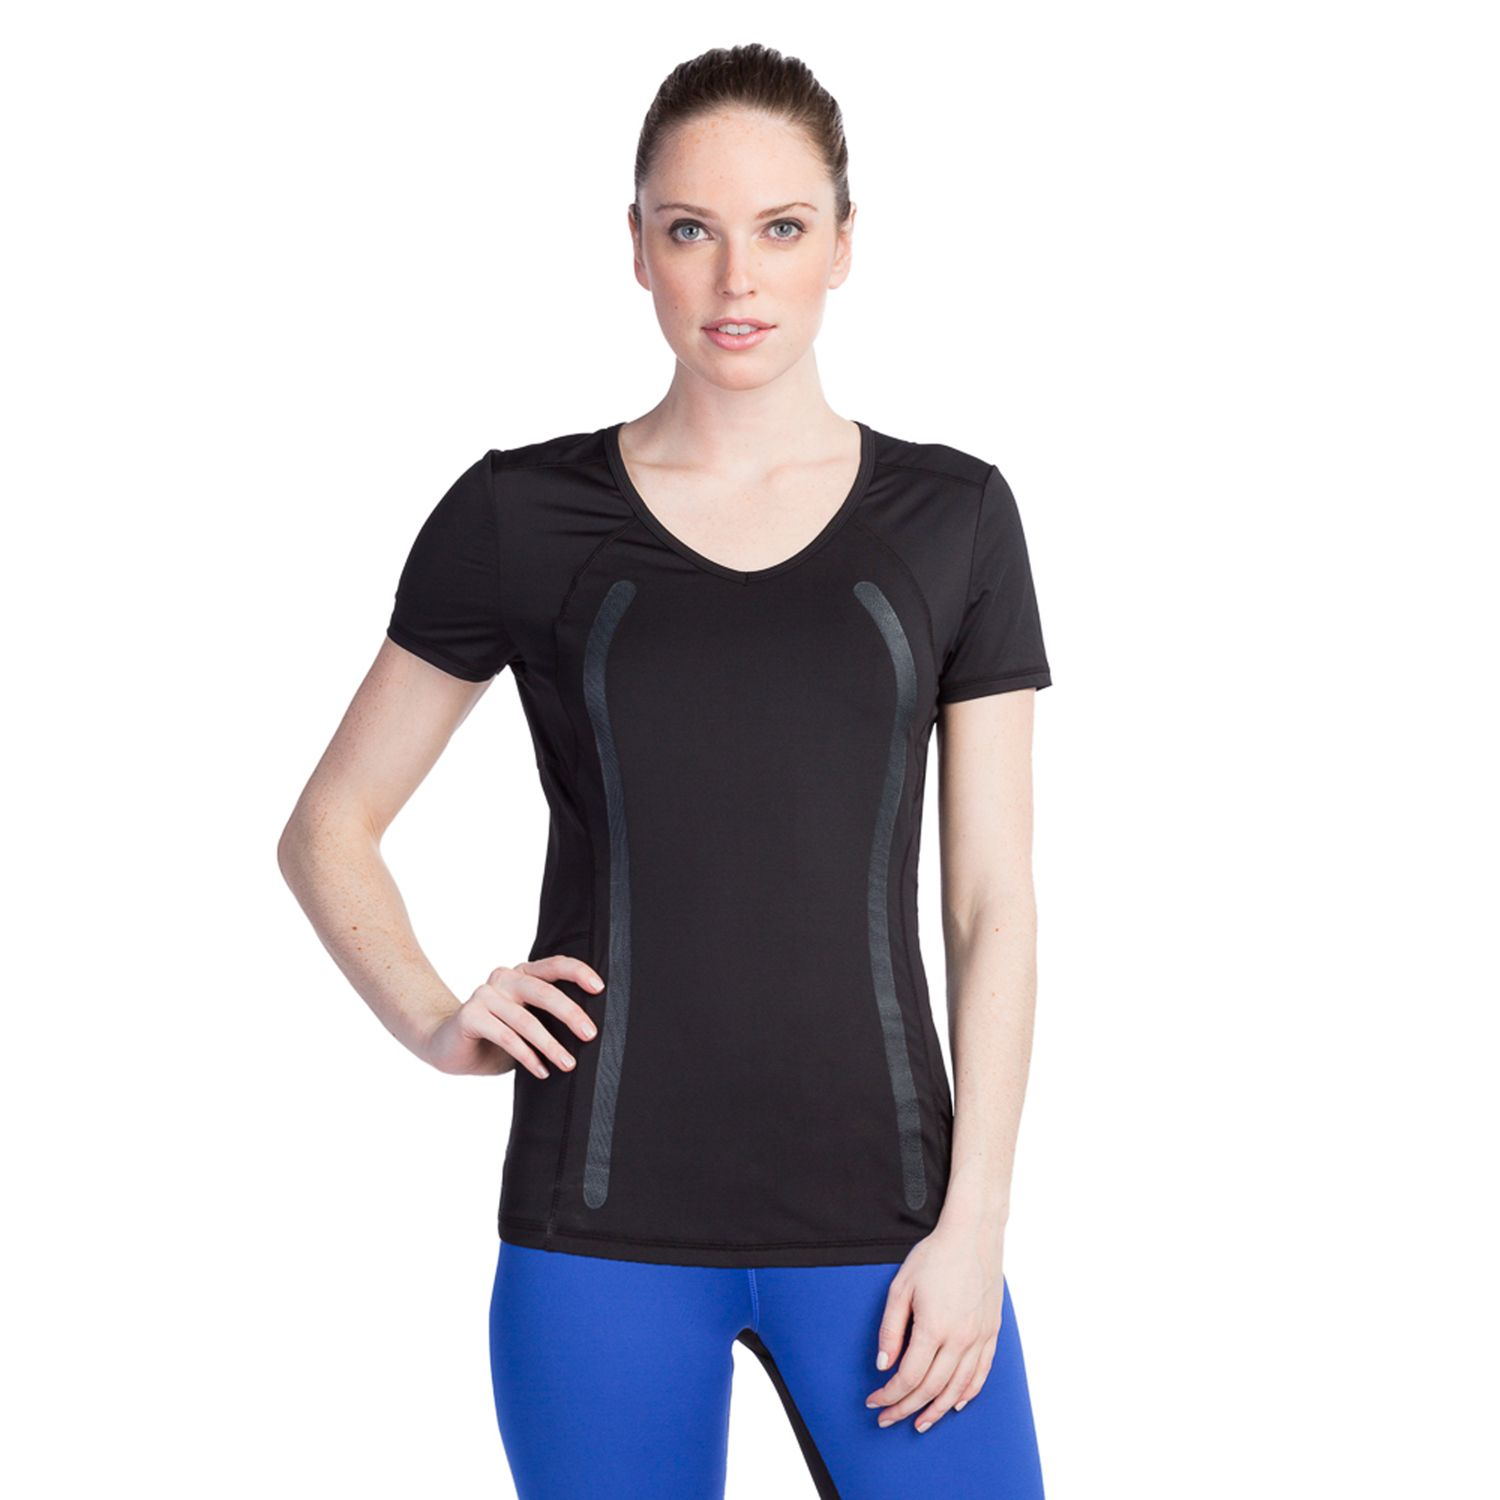 Womens Pro Series by Kyodan V-Neck Running Tee